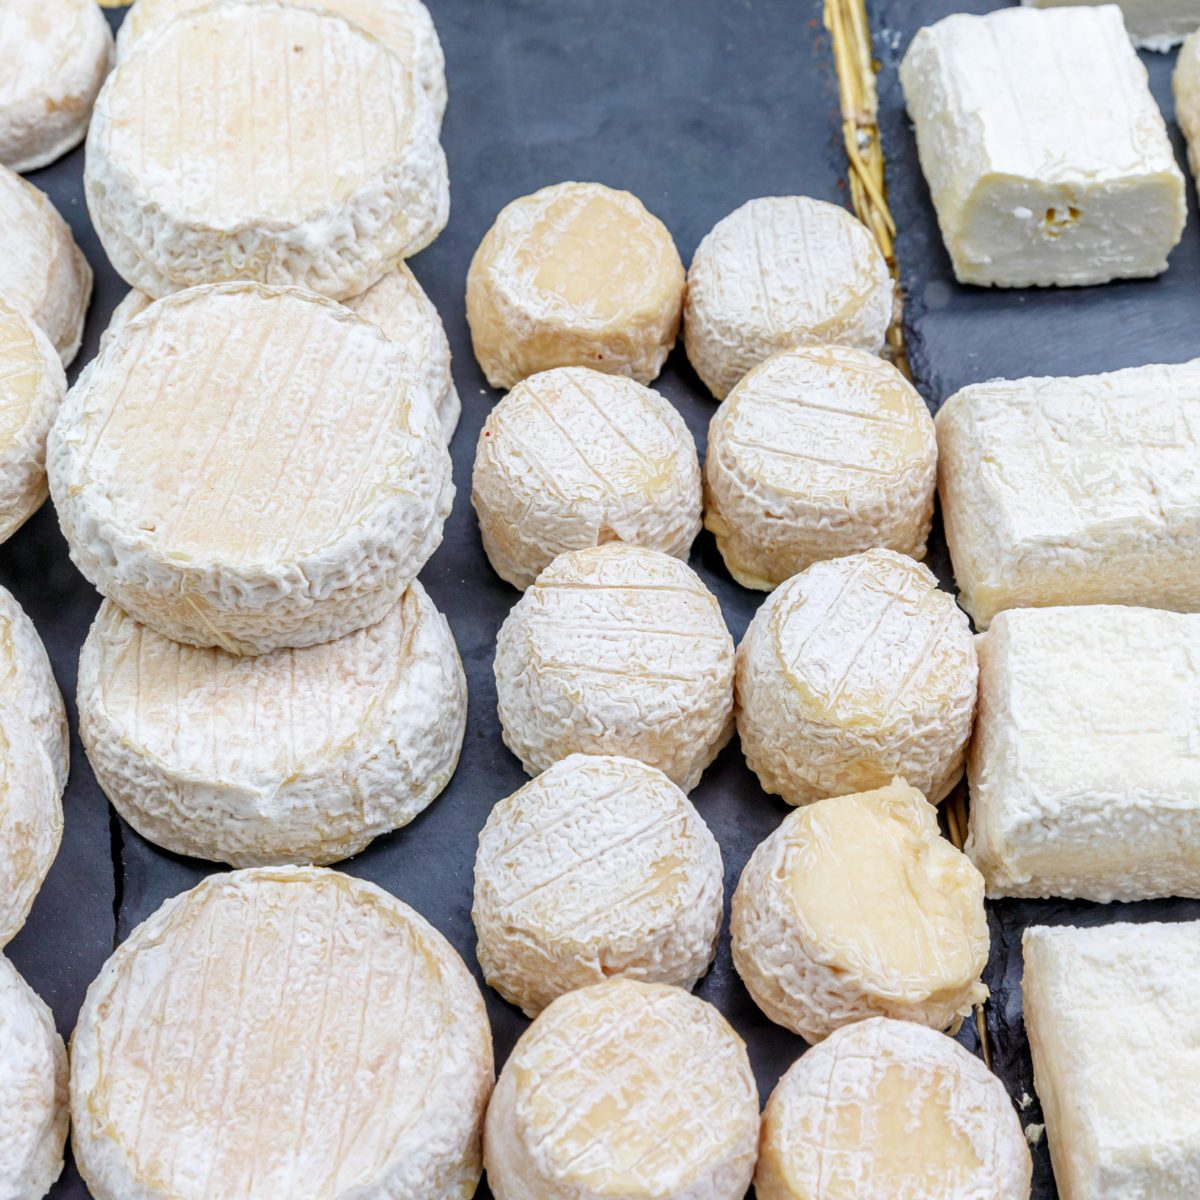 Goat and Sheep Cheese Display at the Farmer's Market; Shutterstock ID 1407689732; Job (TFH, TOH, RD, BNB, CWM, CM): TOH Farmers Market Food Safety